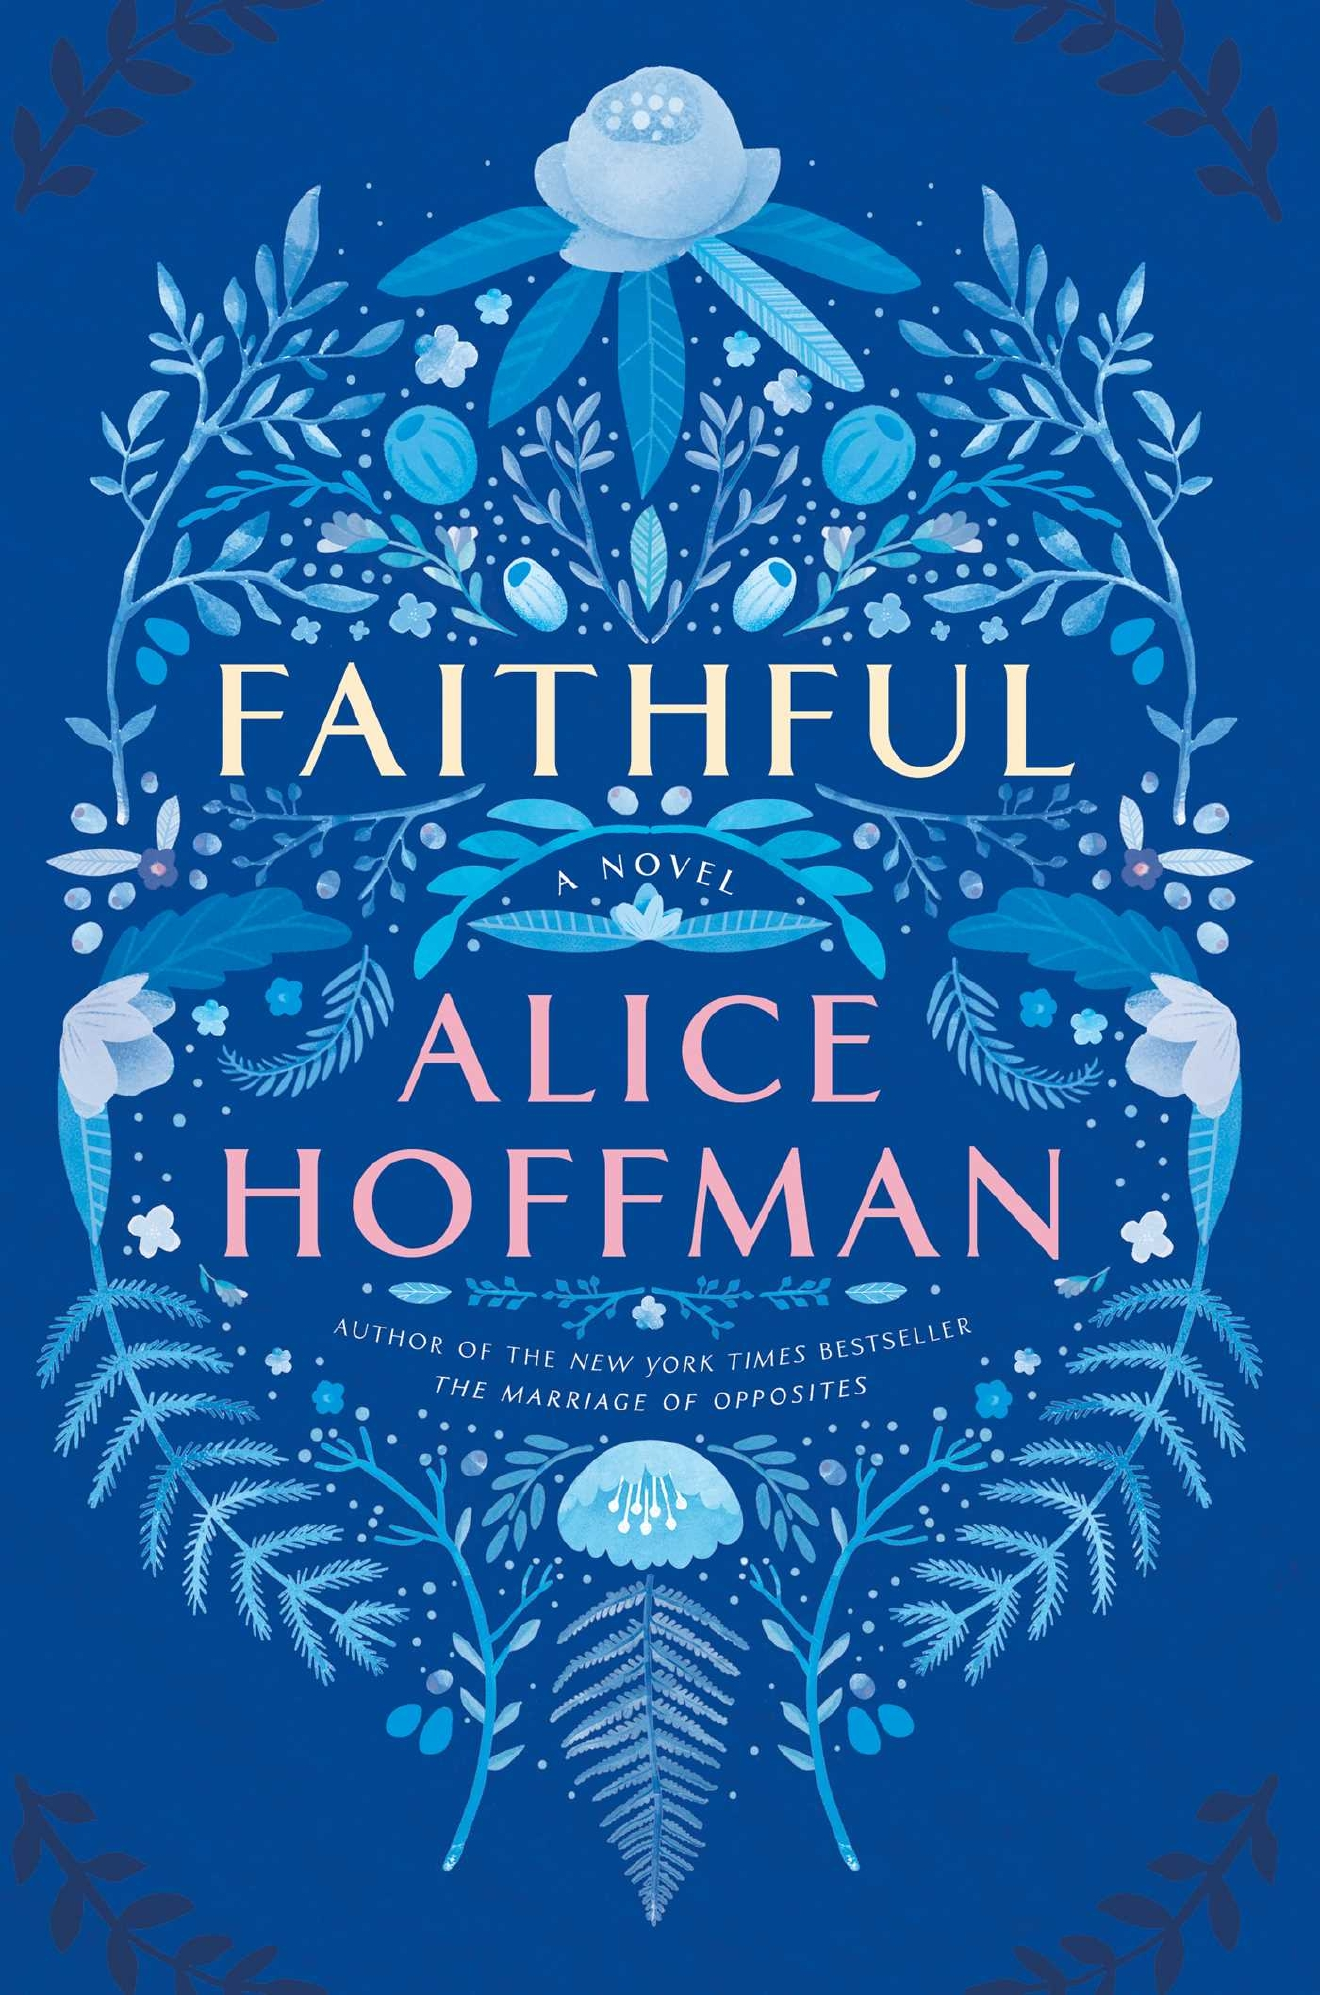 Book: Faithful / Author: Alice Hoffman / Publisher: Simon & Schuster, 2016 // Image courtesy of Simon & Schuster// Article Published: 1.9.17